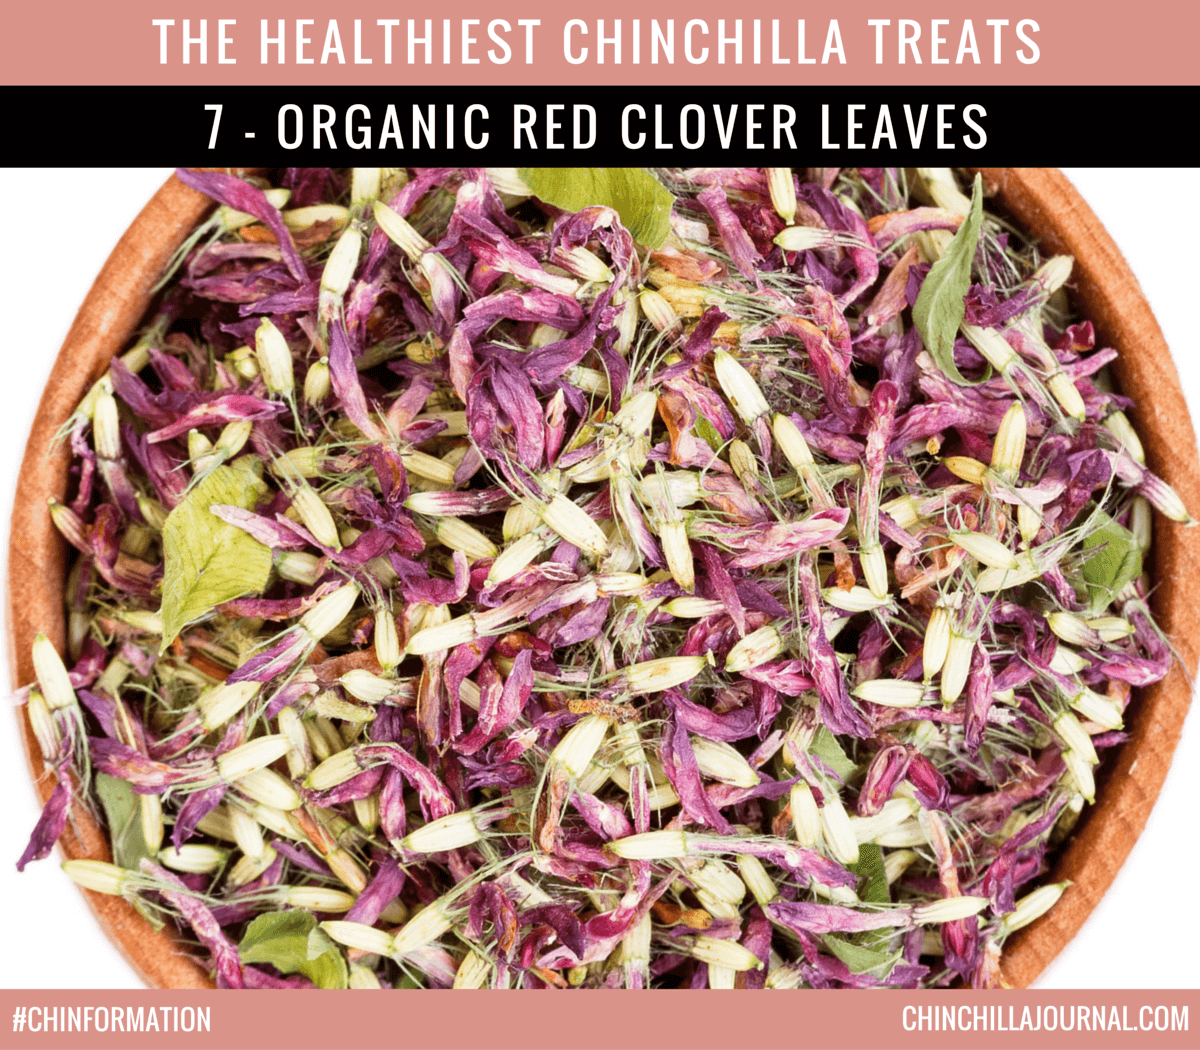 The Healthiest Chinchilla Treats - 7 - Organic Red Clover Leaves